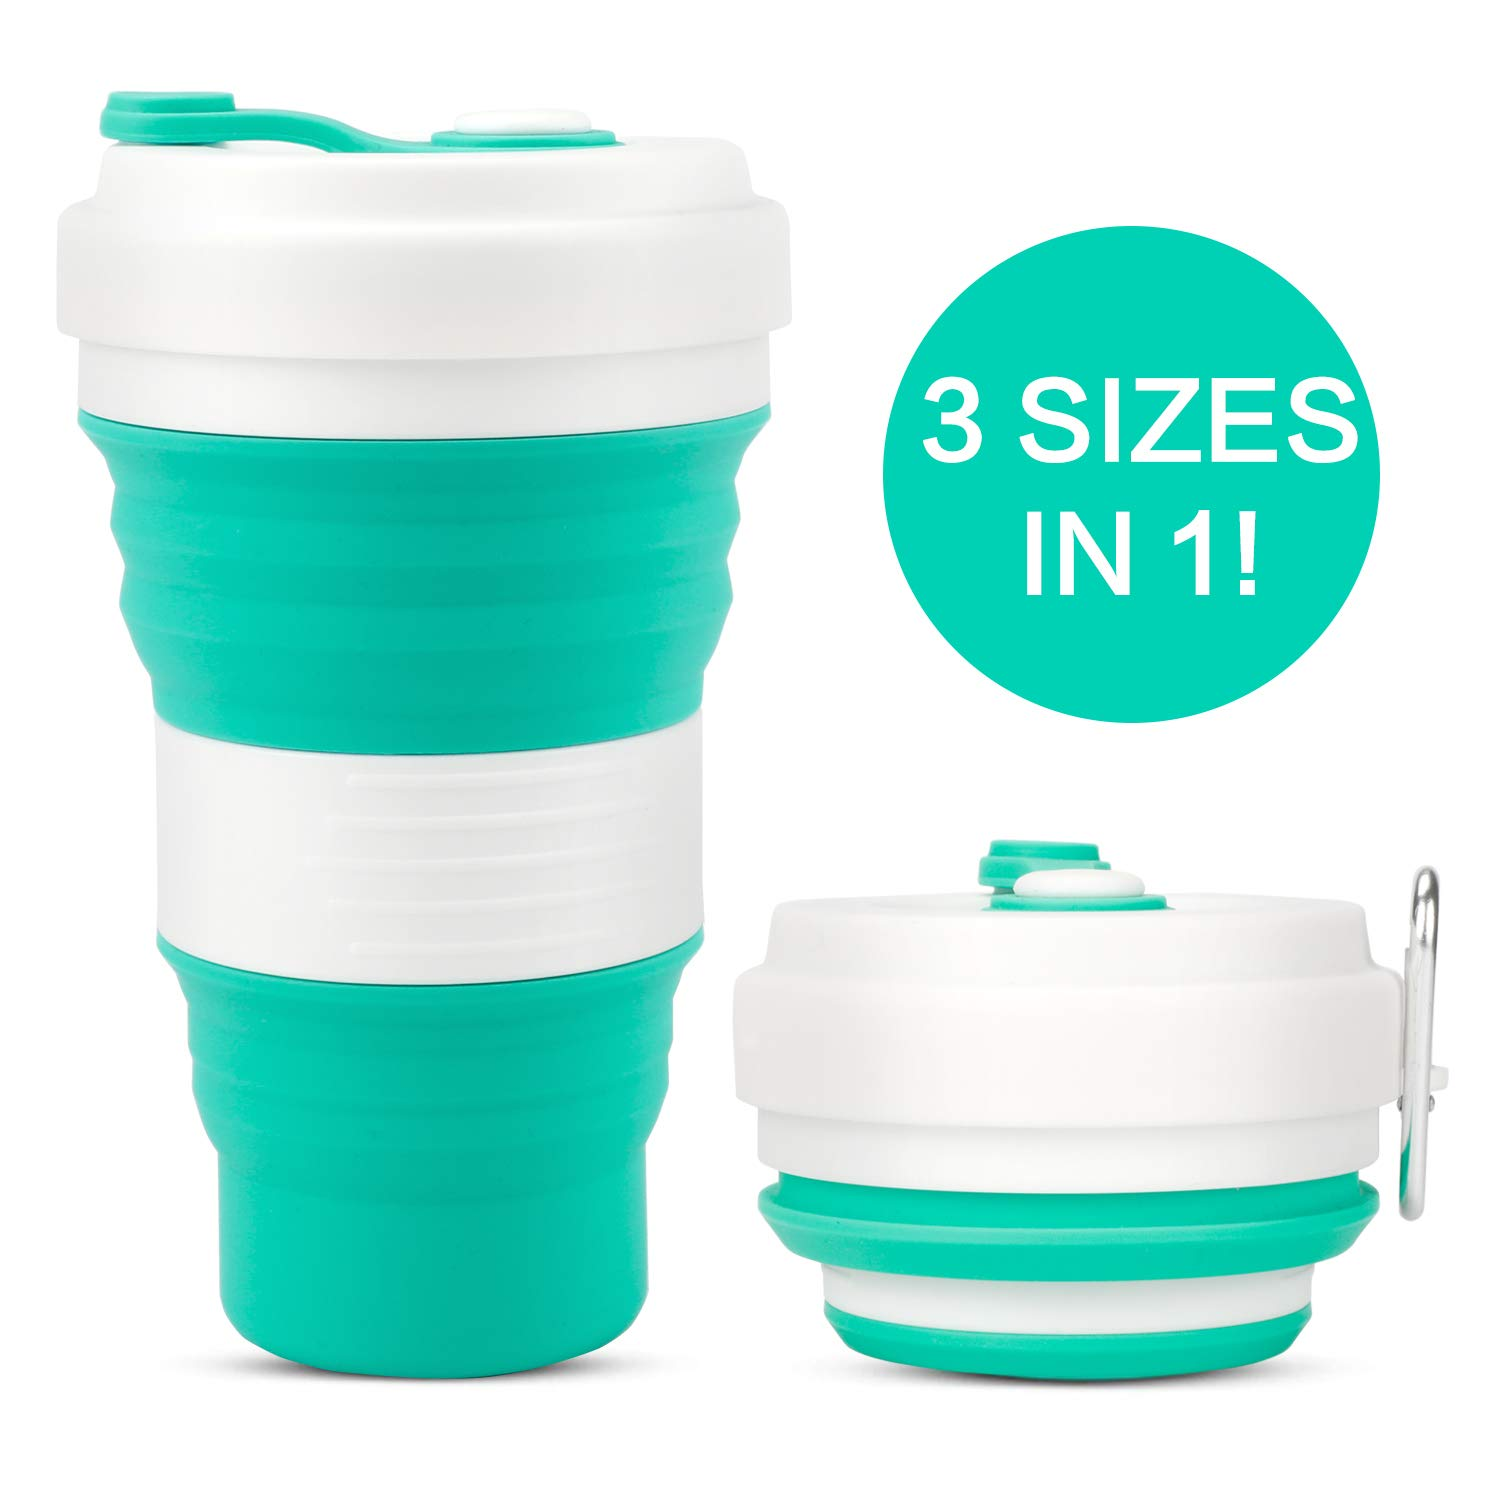 Collapsible Coffee Cup – MojiDecor Silicone Travel Mug Coffee Cup Leak Proof Multifunctional BPA Free Portable Bottle Travel Cup (Green, 550ML)